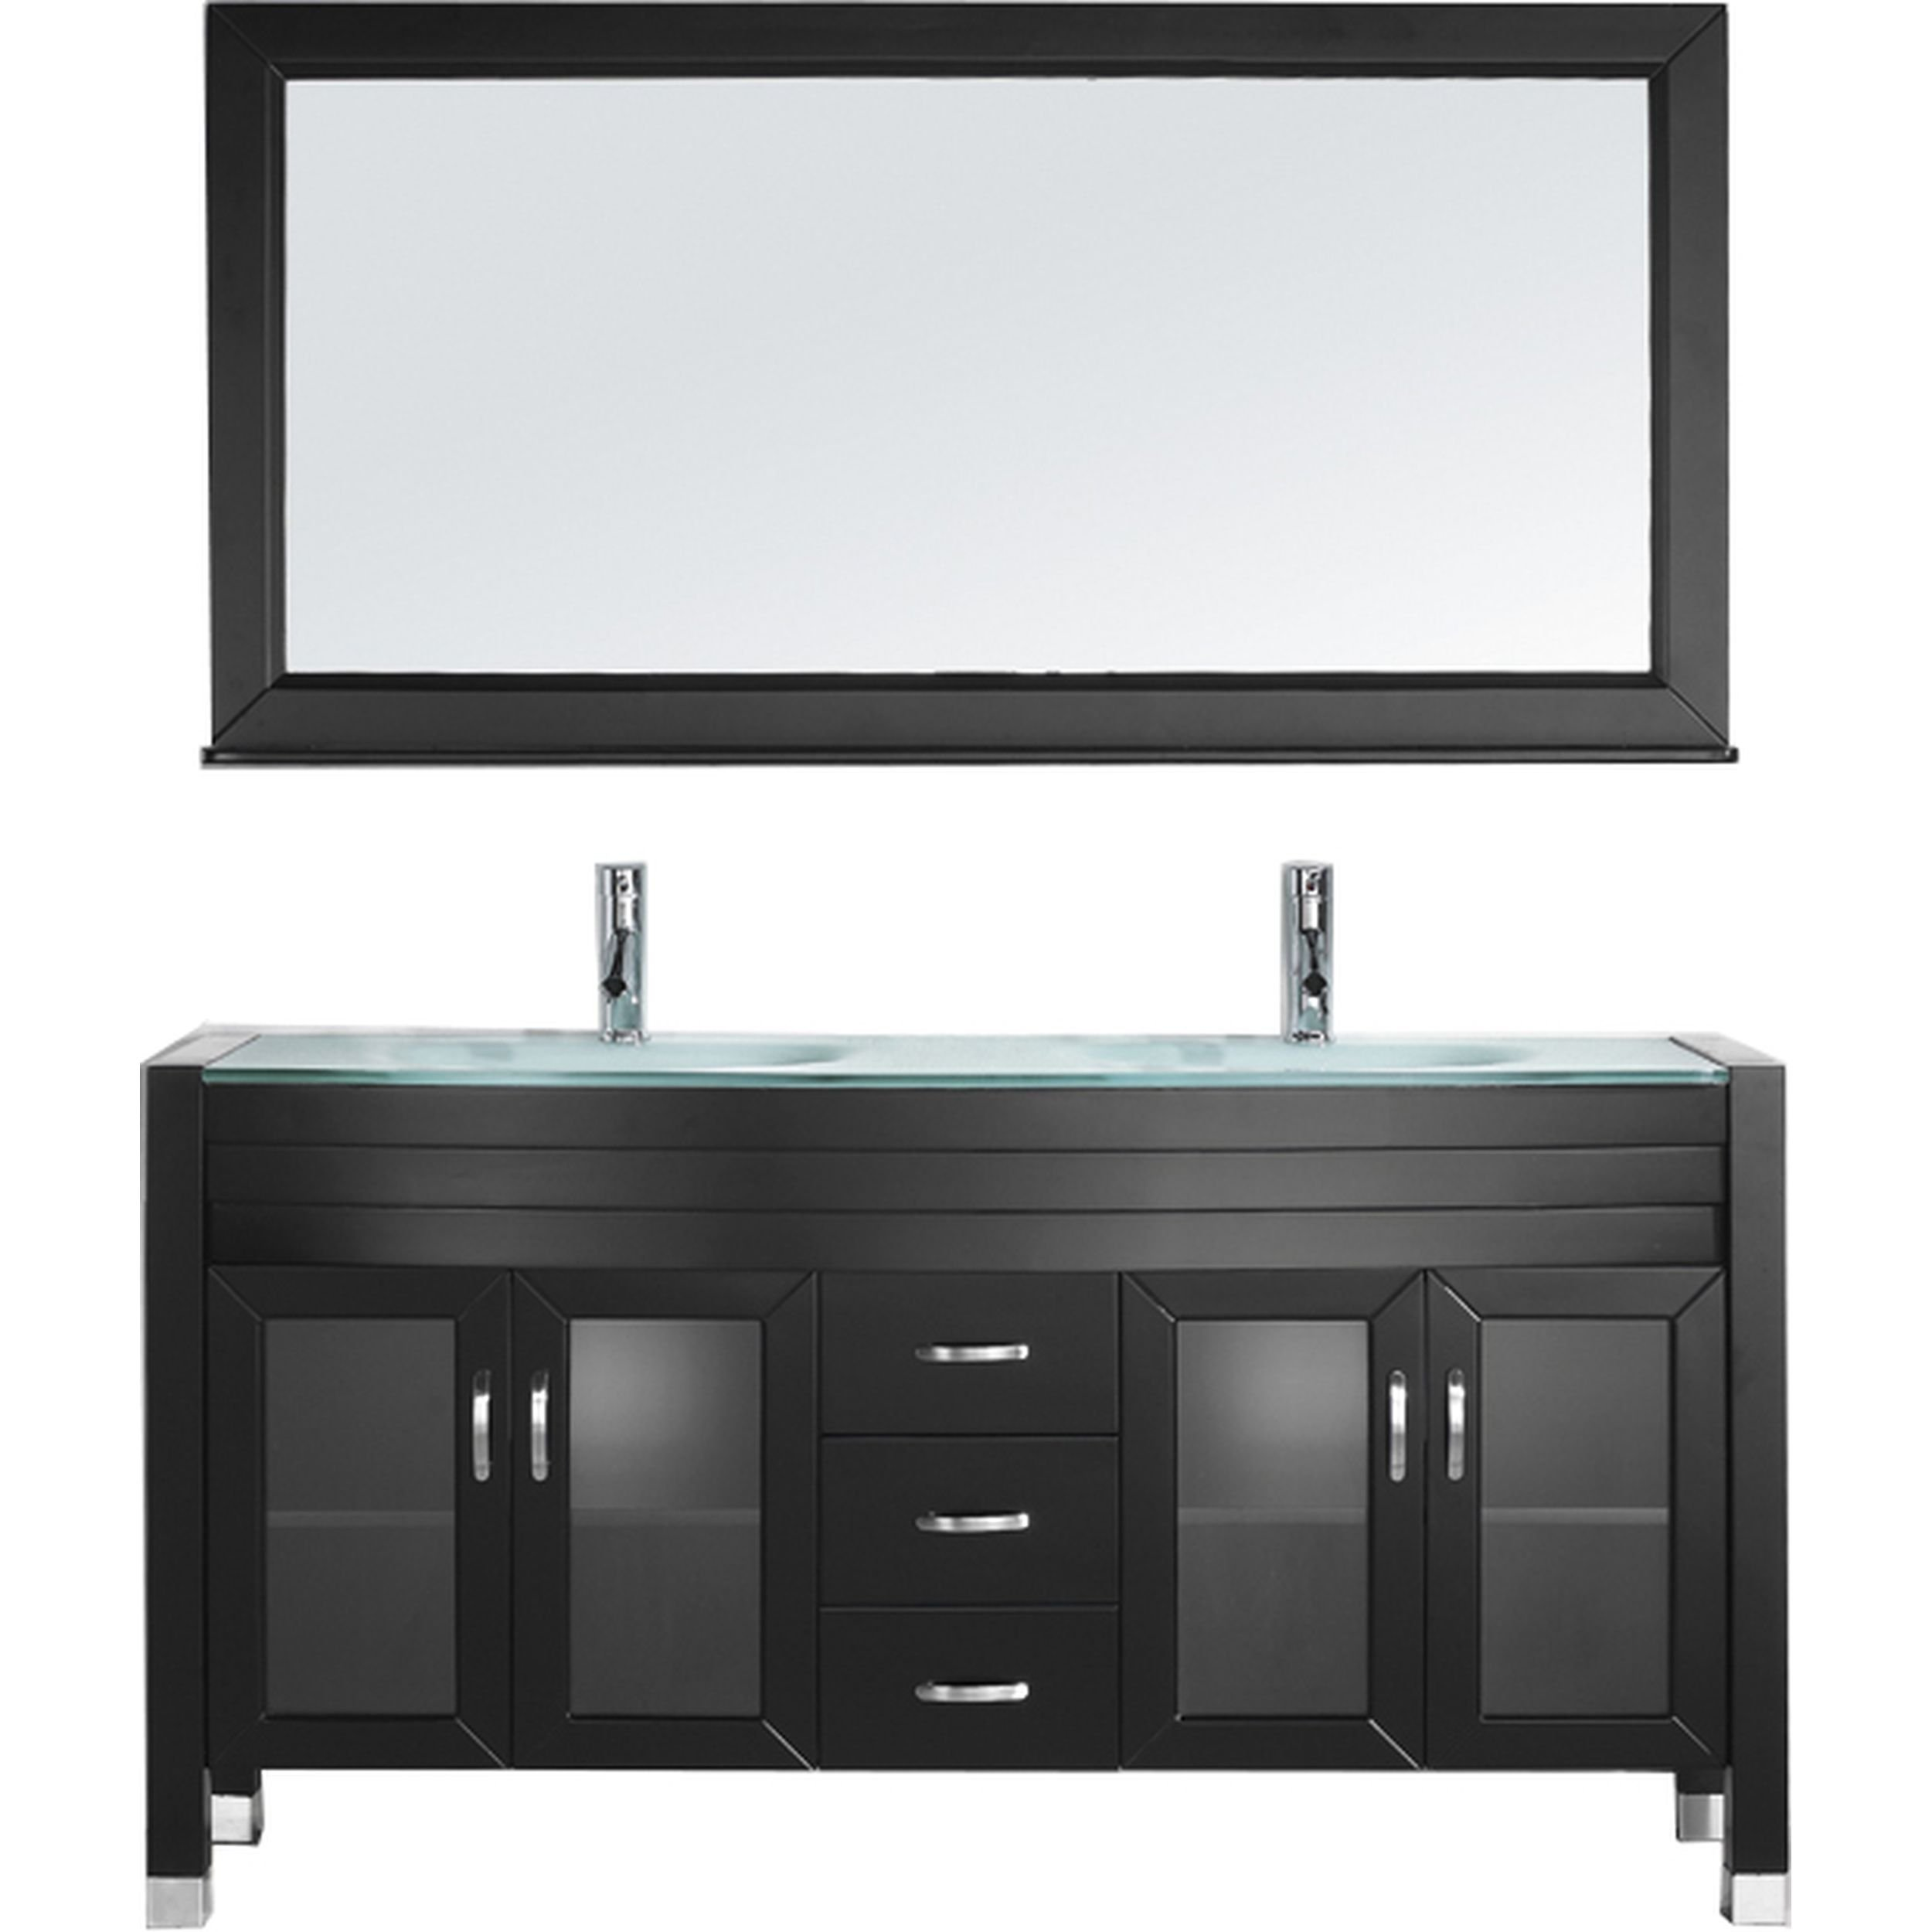 Virtu USA MD-499-G-ES Ava 63-Inch Double Sink Bathroom Vanity Set with Shelf, Faucets and Integrated Glass Basins, Espresso Finish